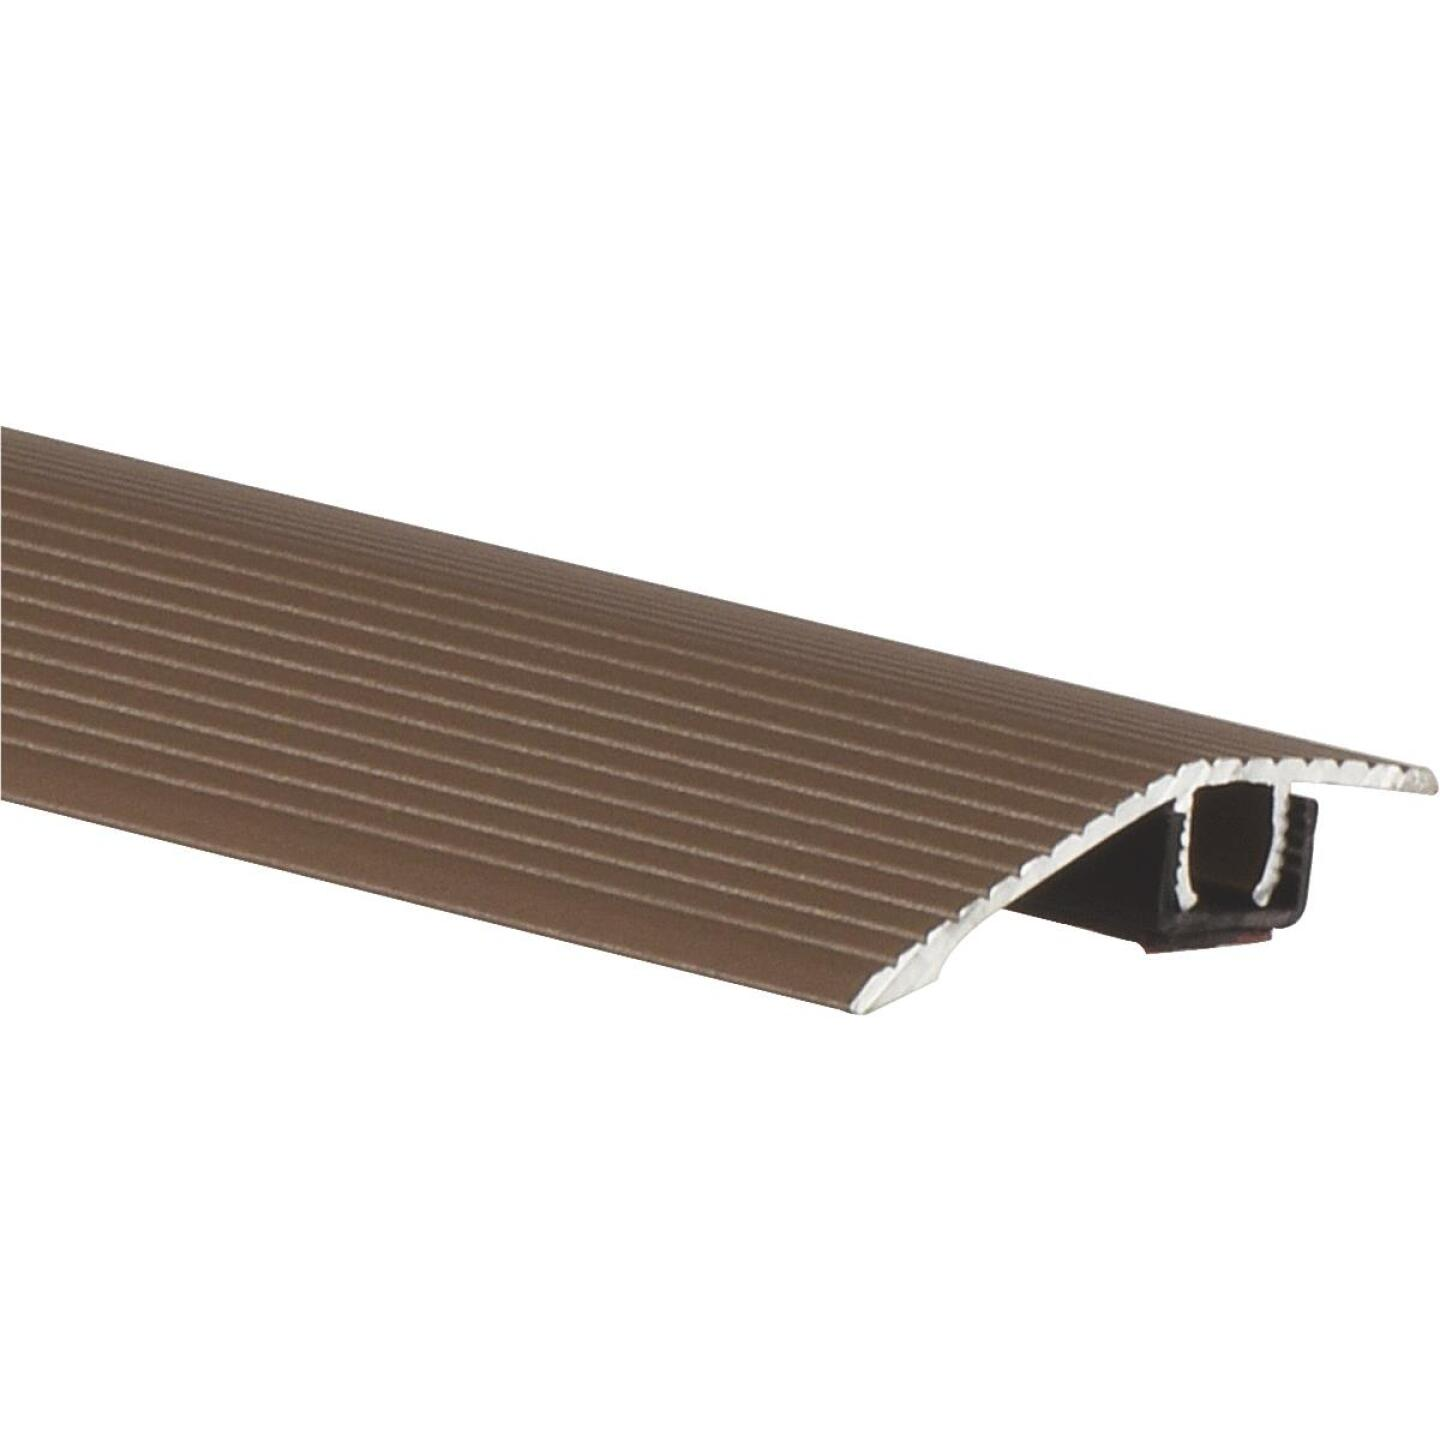 Frost King Satin Cocoa 1-3/16 In. W x 36 In. L Aluminum Reducer Floor Transition Image 1